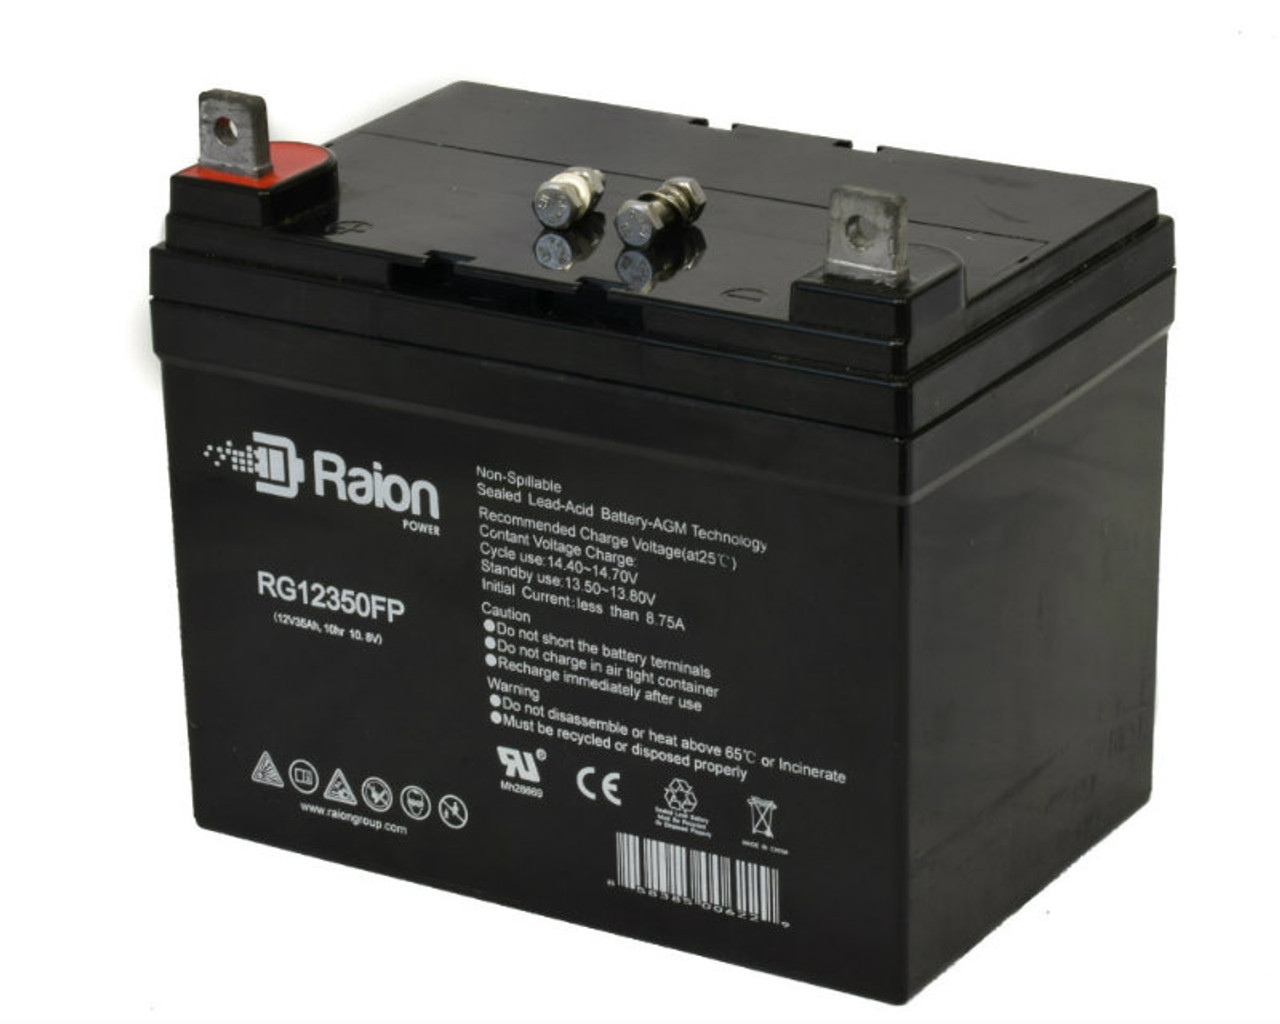 Raion Power RG12350FP Replacement Wheelchair Battery For Bruno Regal (1 Pack)